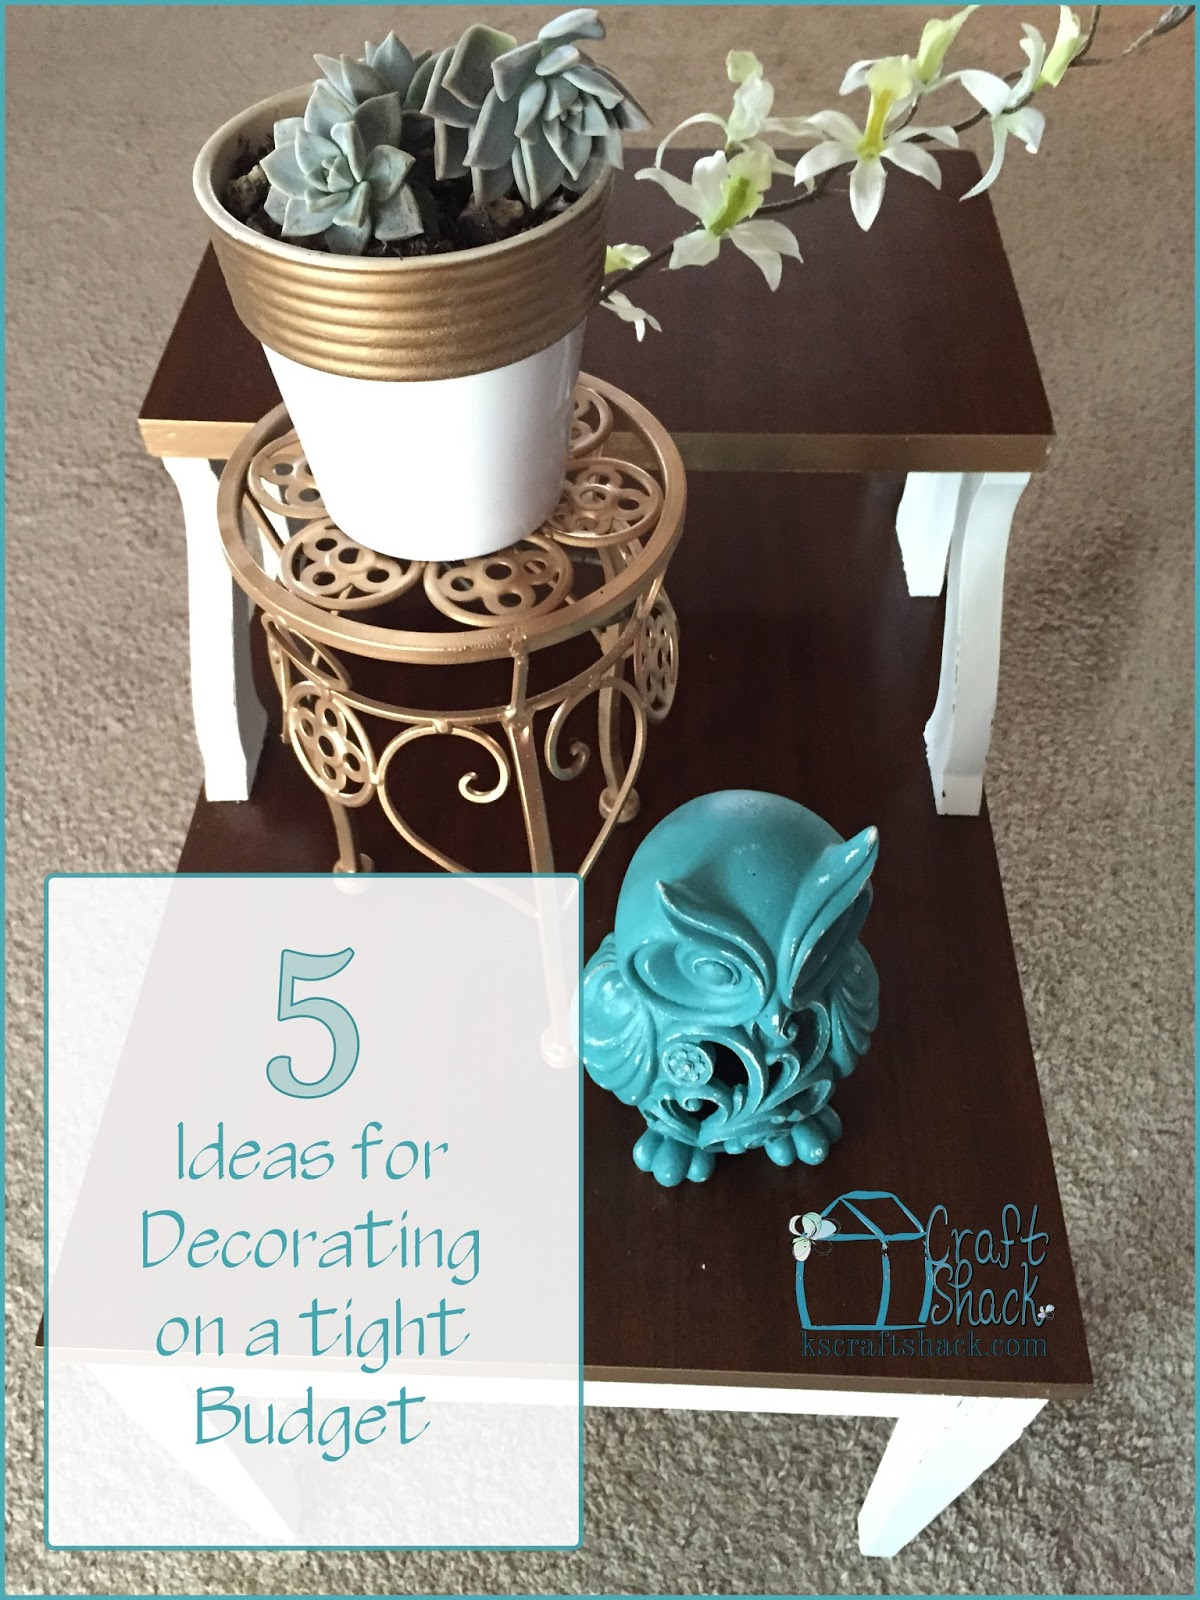 5 ideas for decorating on a tight budget! - Craft Shack Chronicles